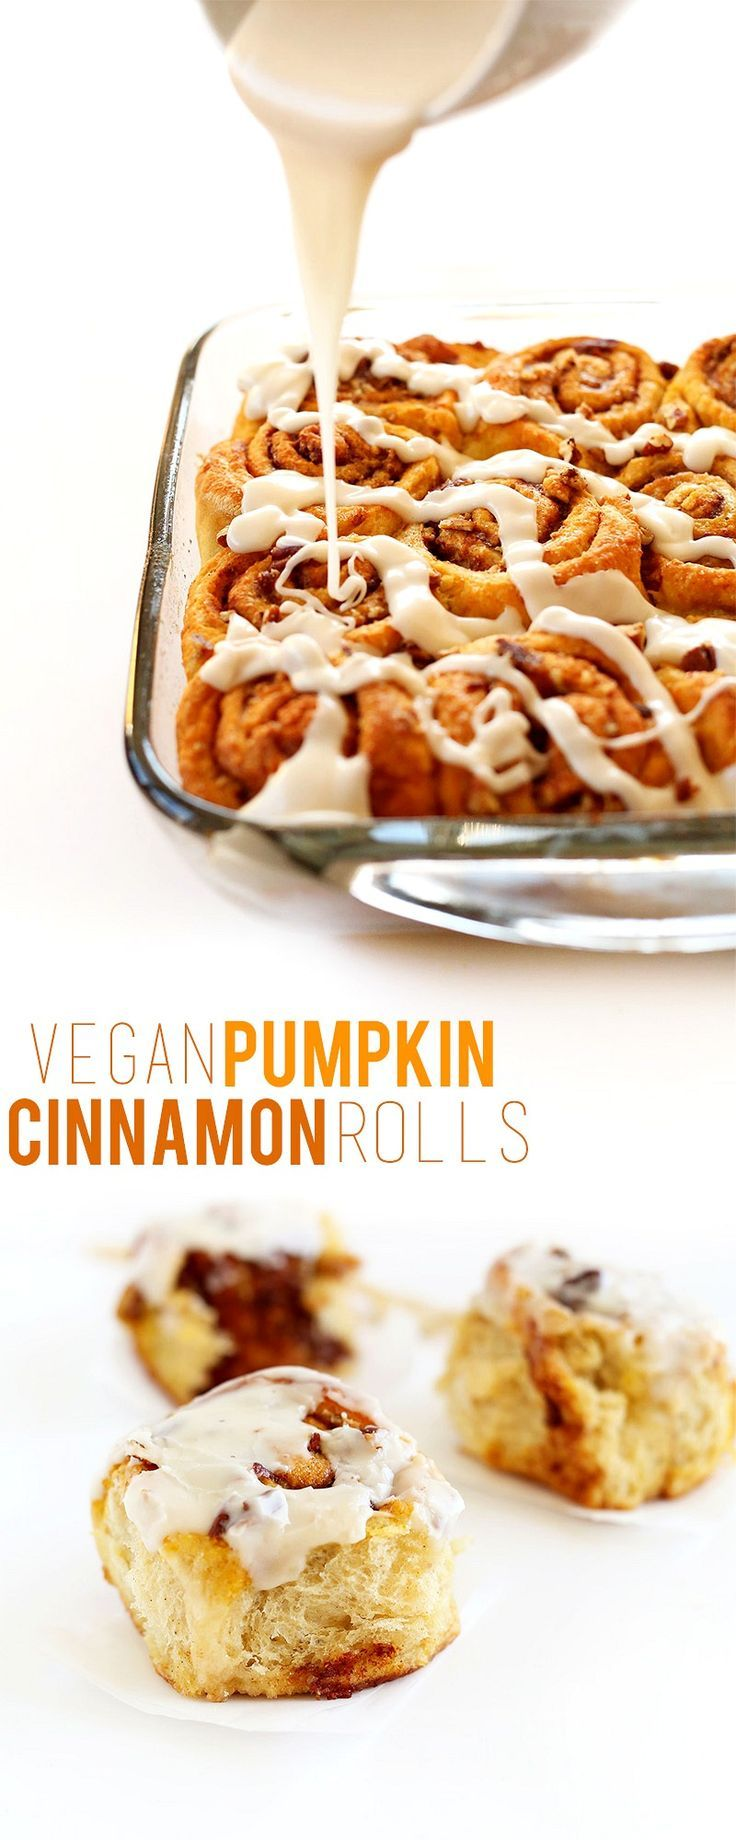 EASY Pumpkin Cinnamon Rolls! Made in 1 BOWL with simple methods and entirely #VEGAN!